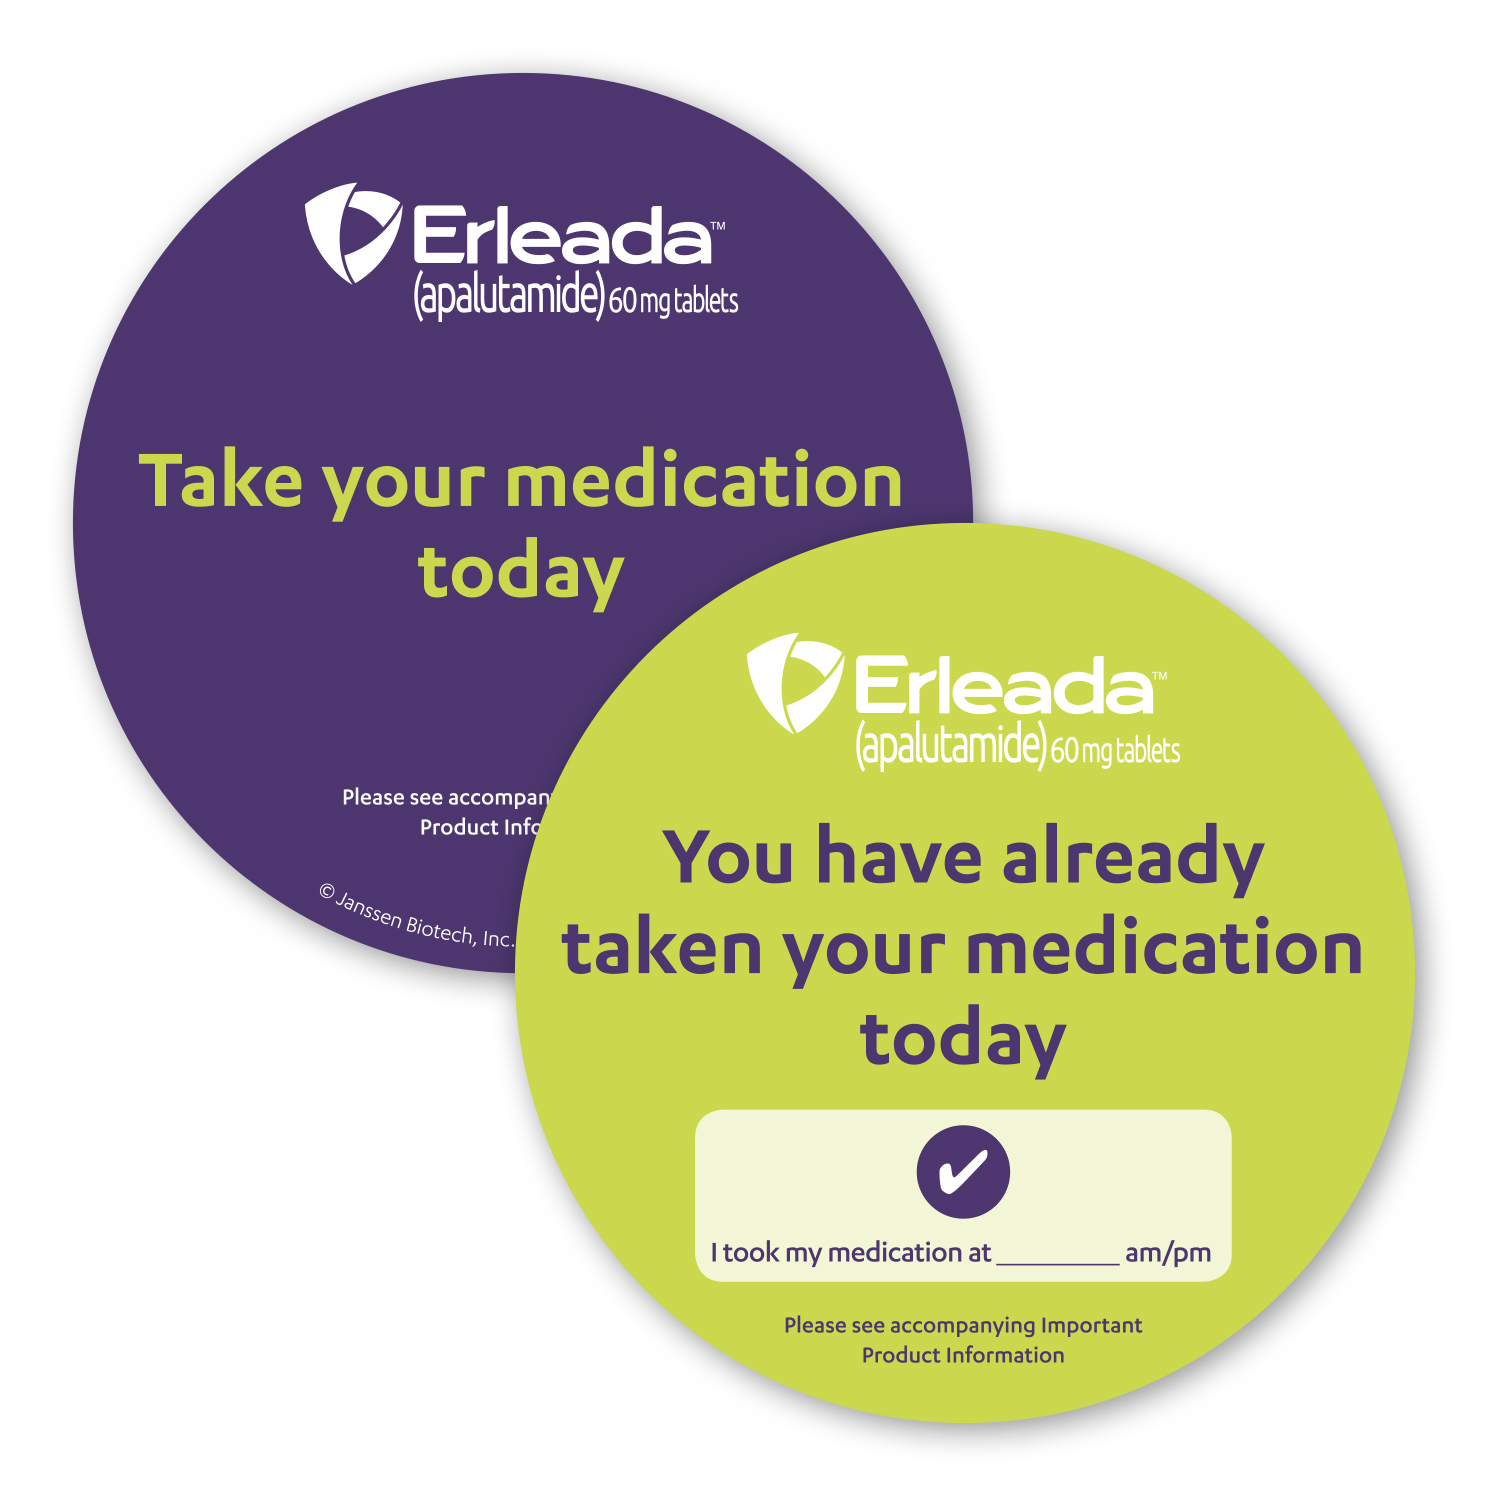 """• TWCST Custom Double-Sided Magnet, 4"""" Diameter, .045 thickness  • 5,000 piece order with a write-on area that was distributed to patients to remind them to take their medication."""